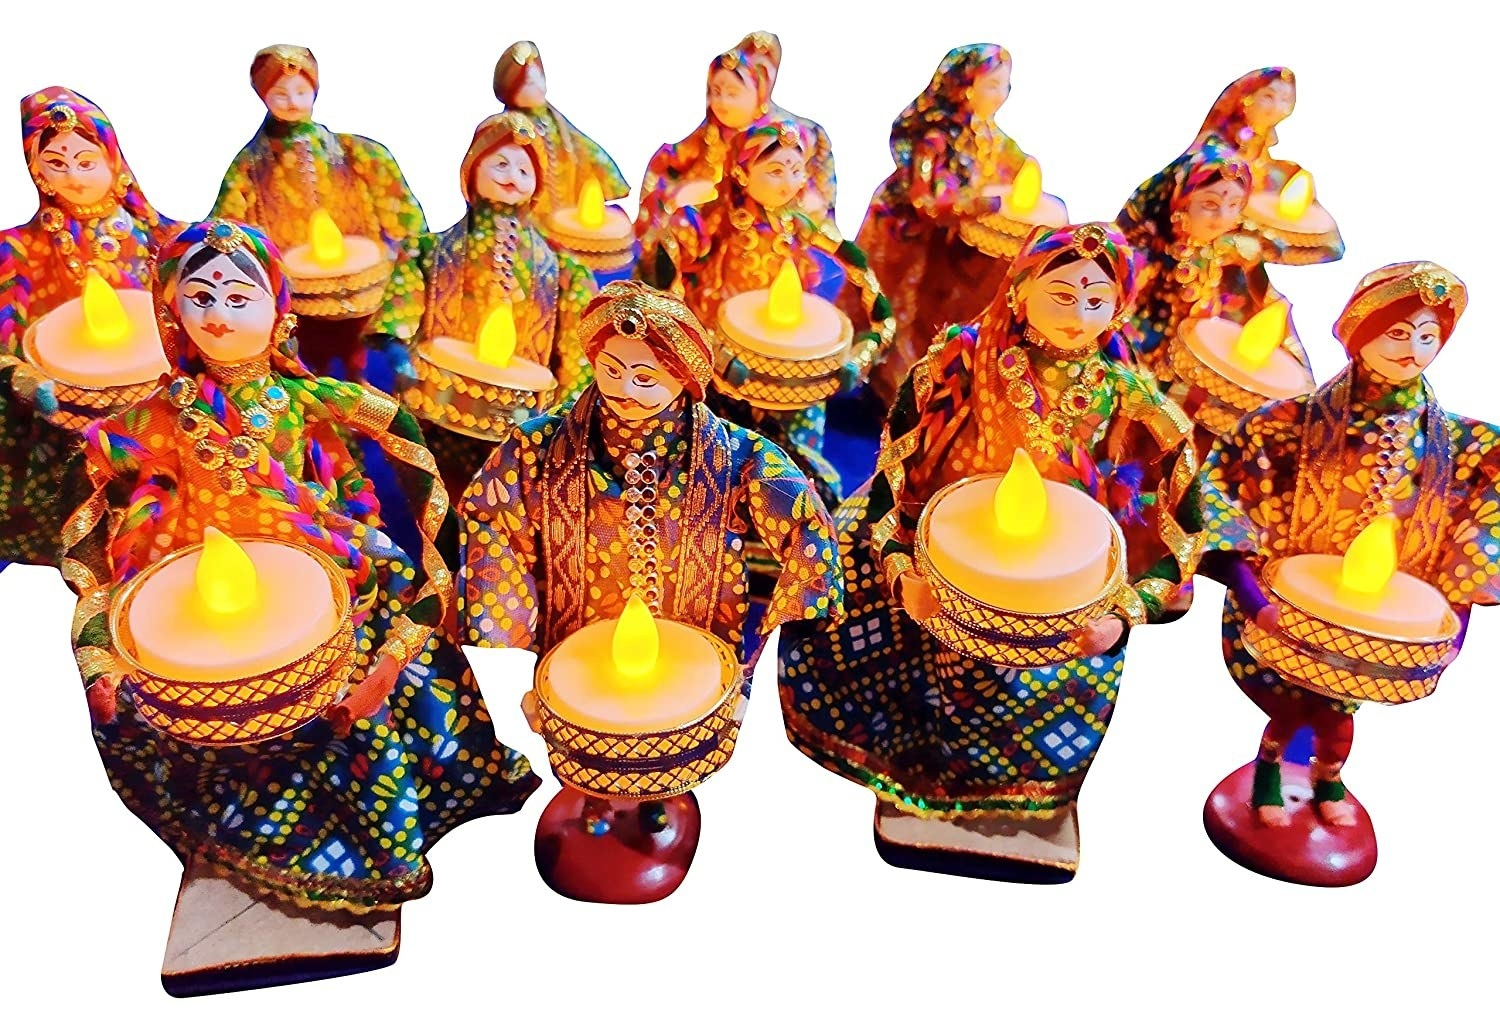 A Rajasthani puppet candle holder